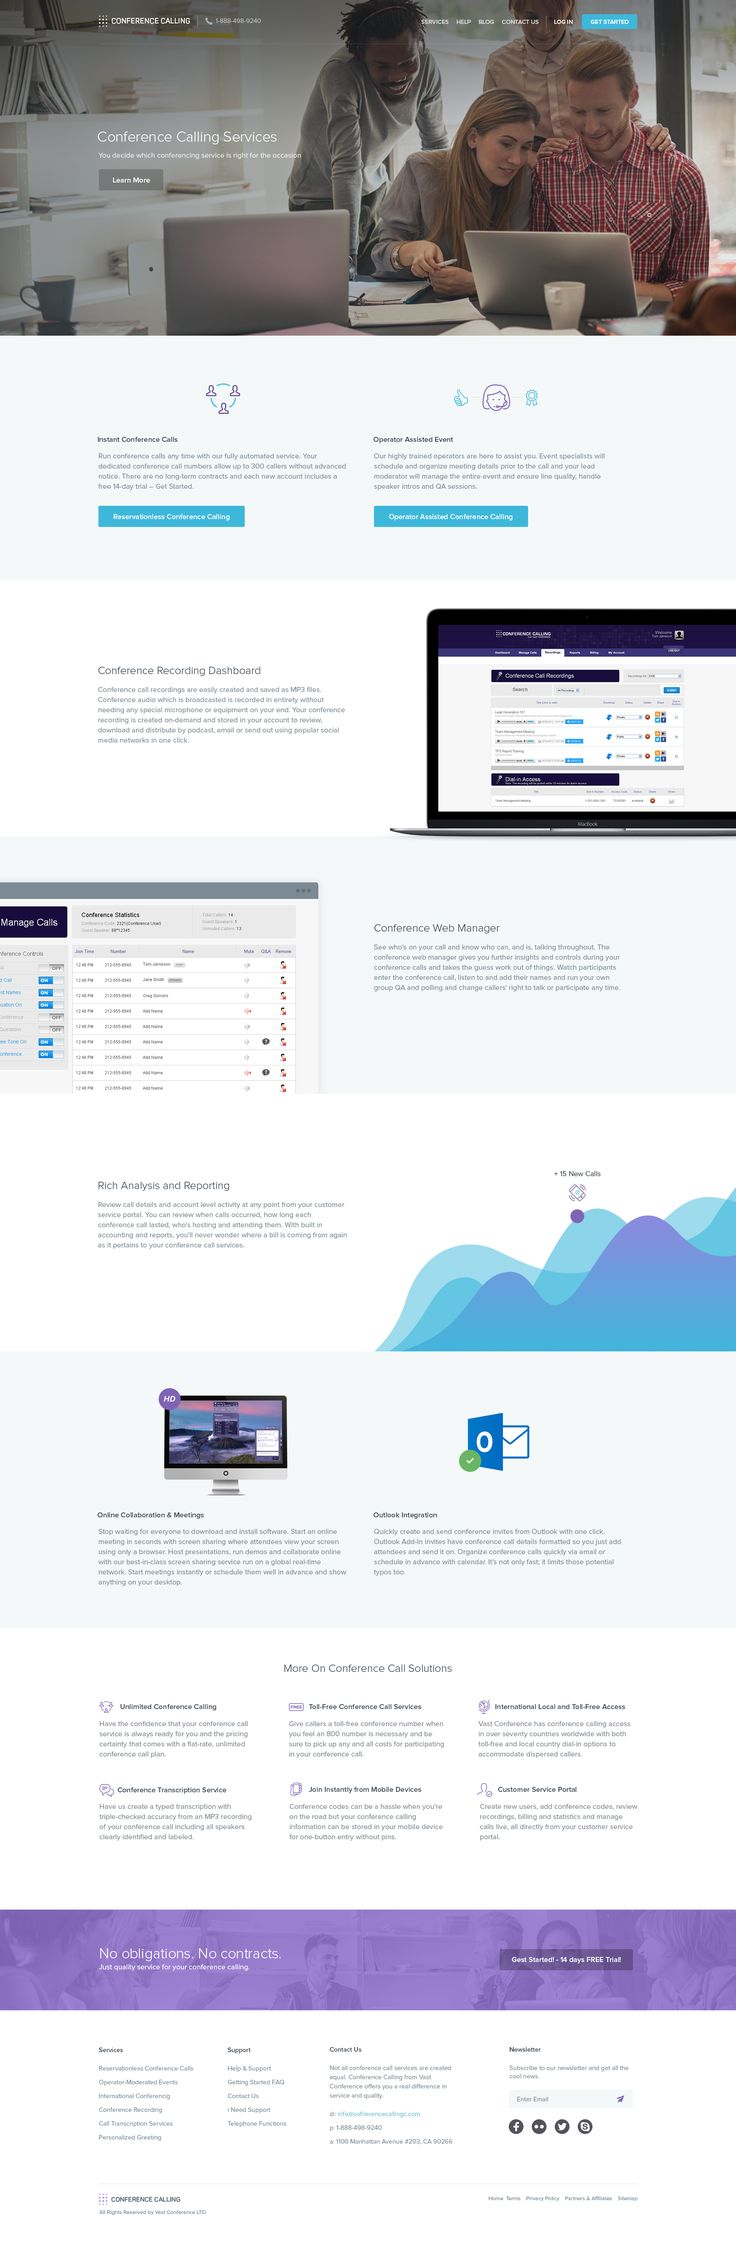 Conference Calling - Services Page by Balkan Brothers